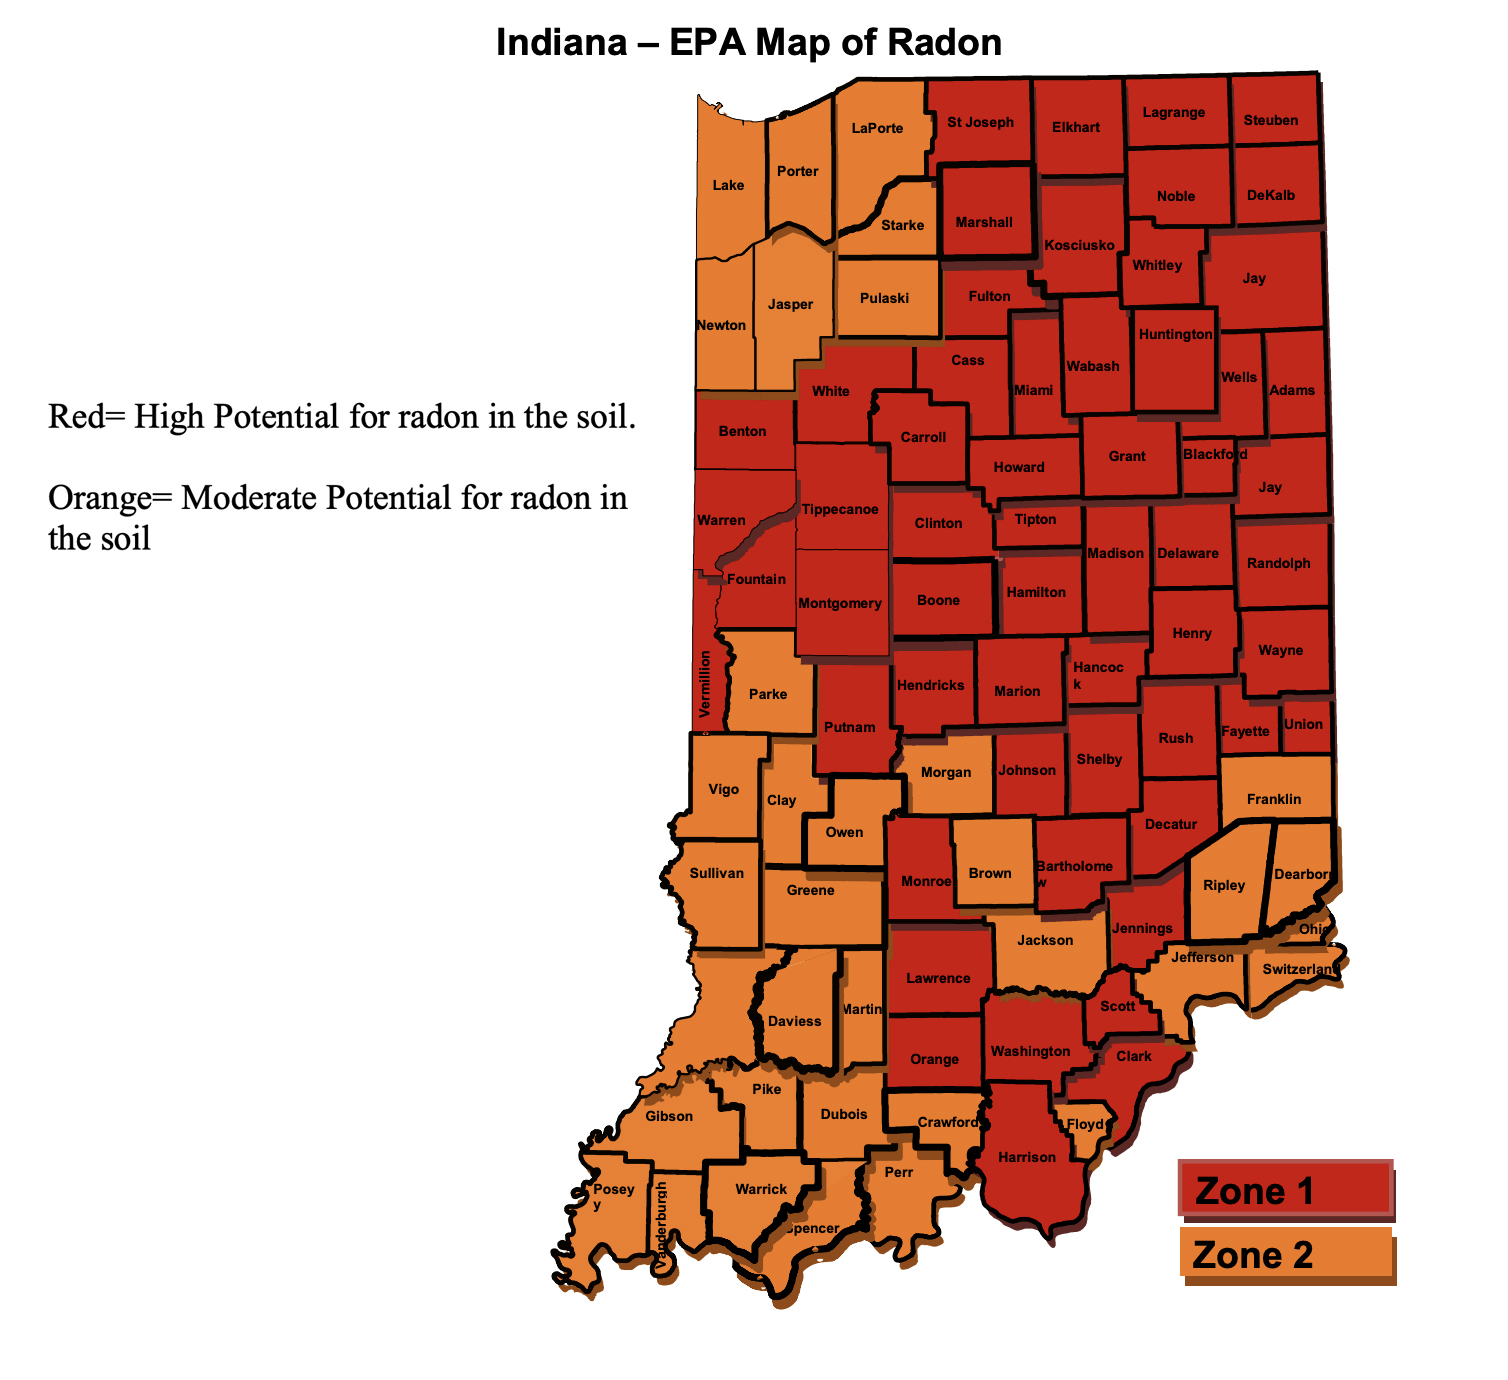 Indiana radon map